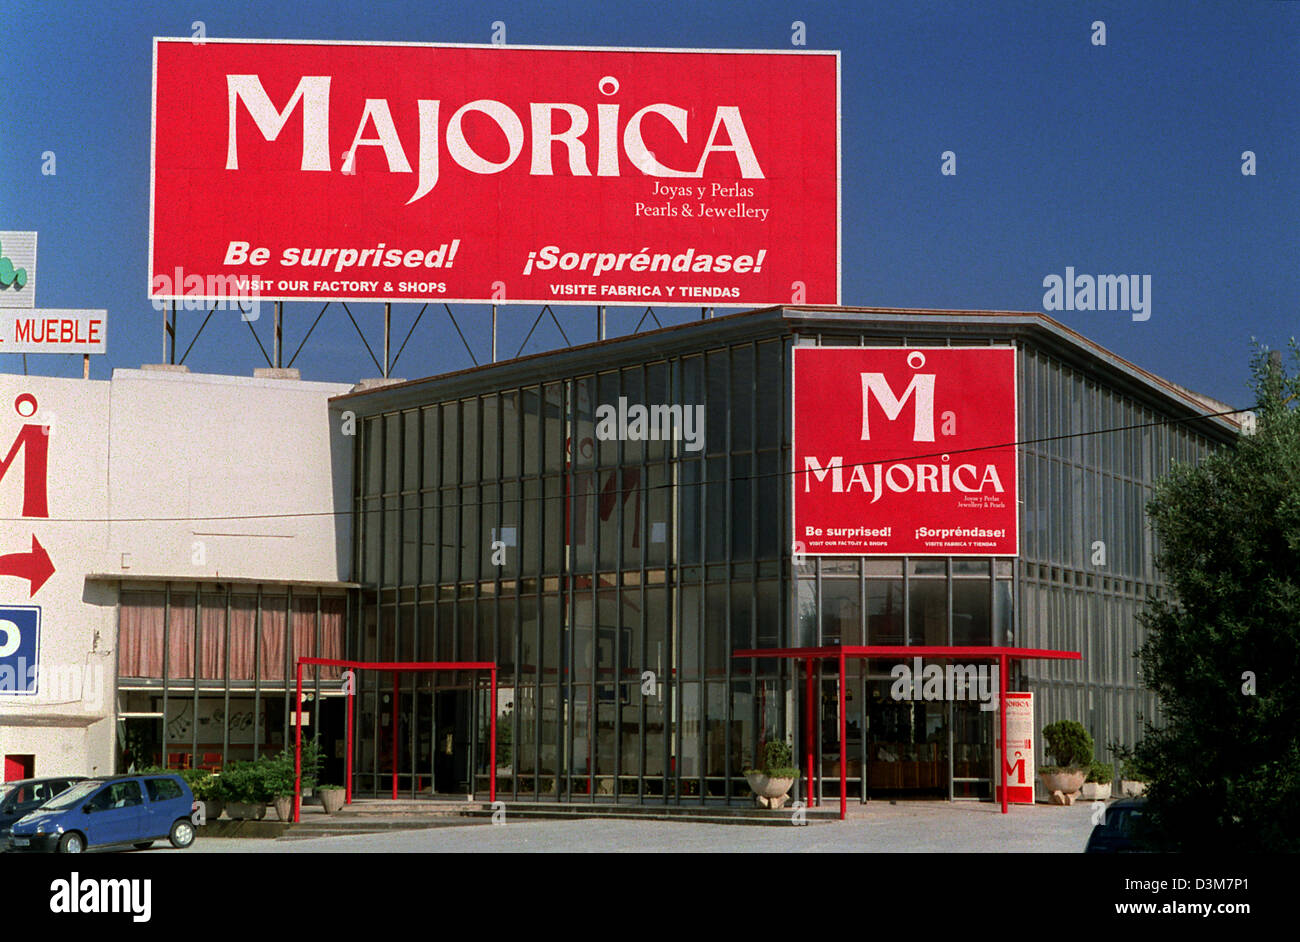 Muebles La Fabrica Manacor Dpa File The Photo Shows The Entrance To The Salesroom Of The